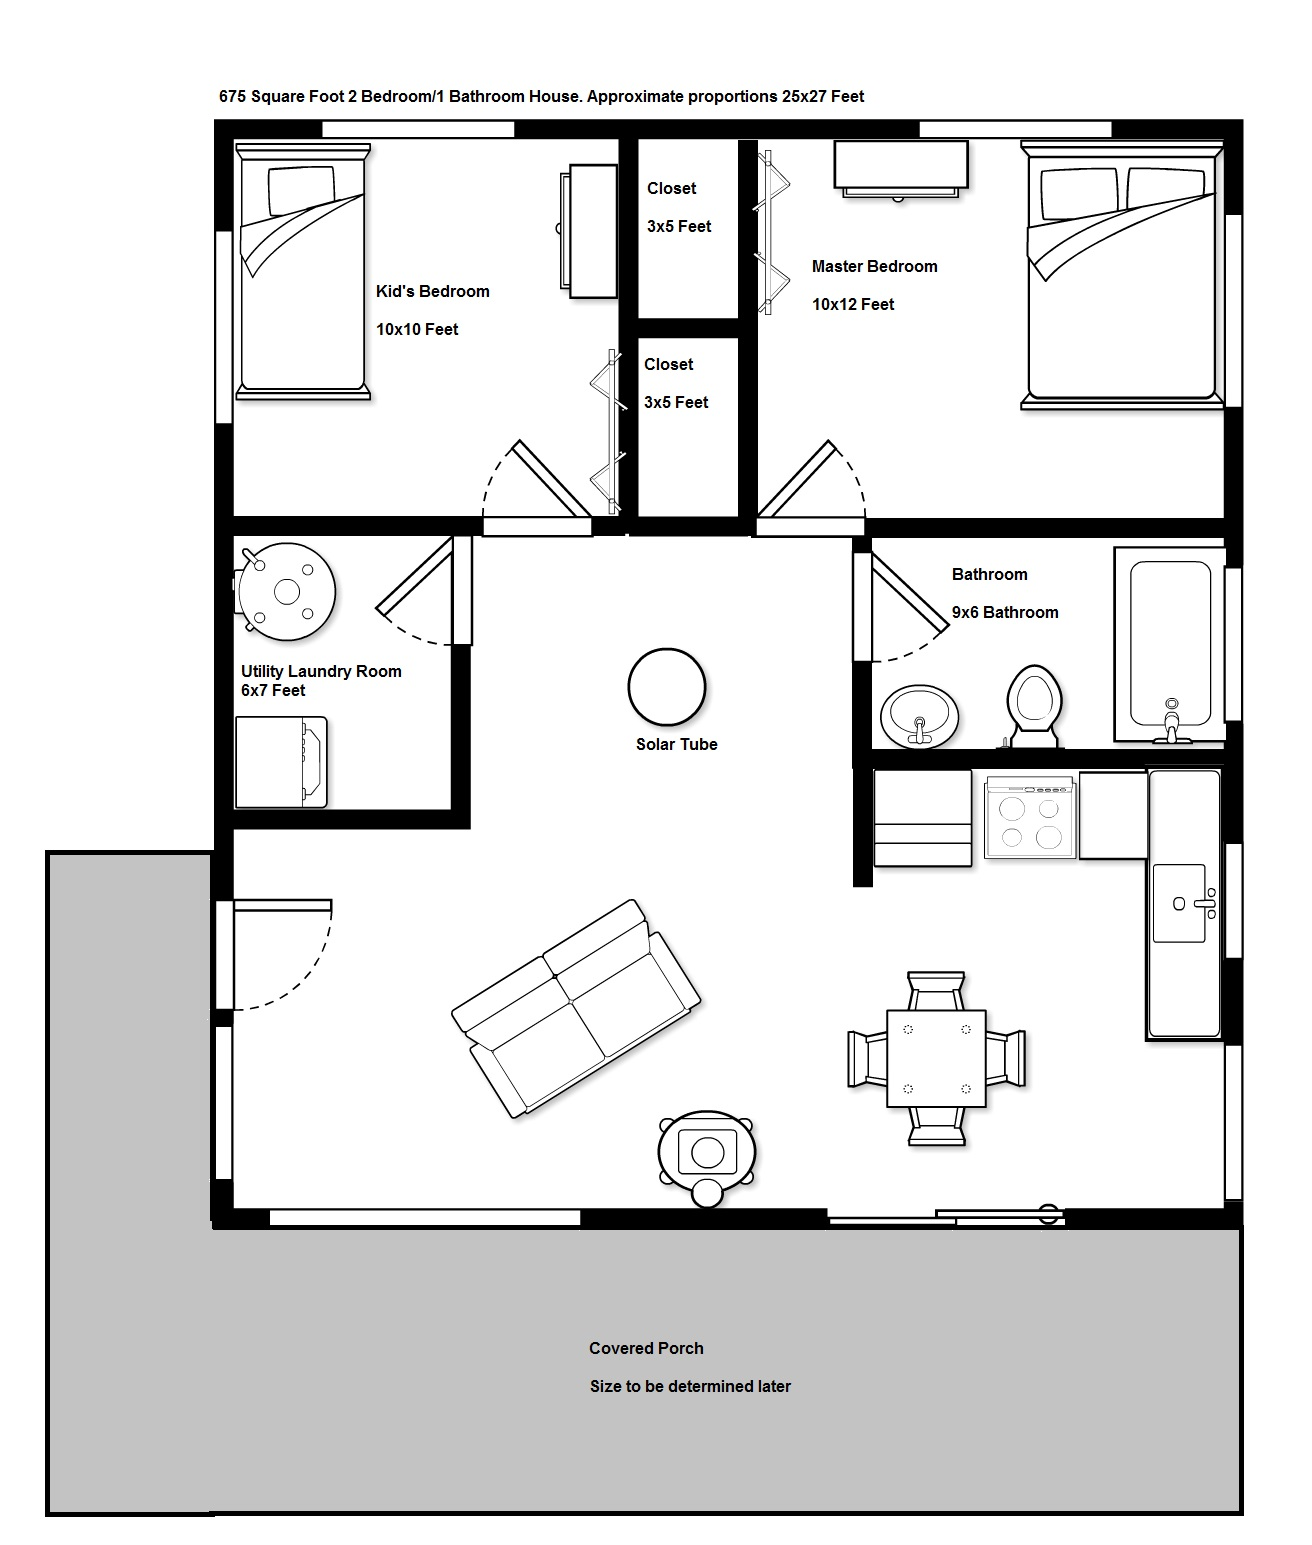 Basic house plans 2 bedrooms eddiemcgradycom small pool house plans simple modern house floor - Design basics house plans set ...